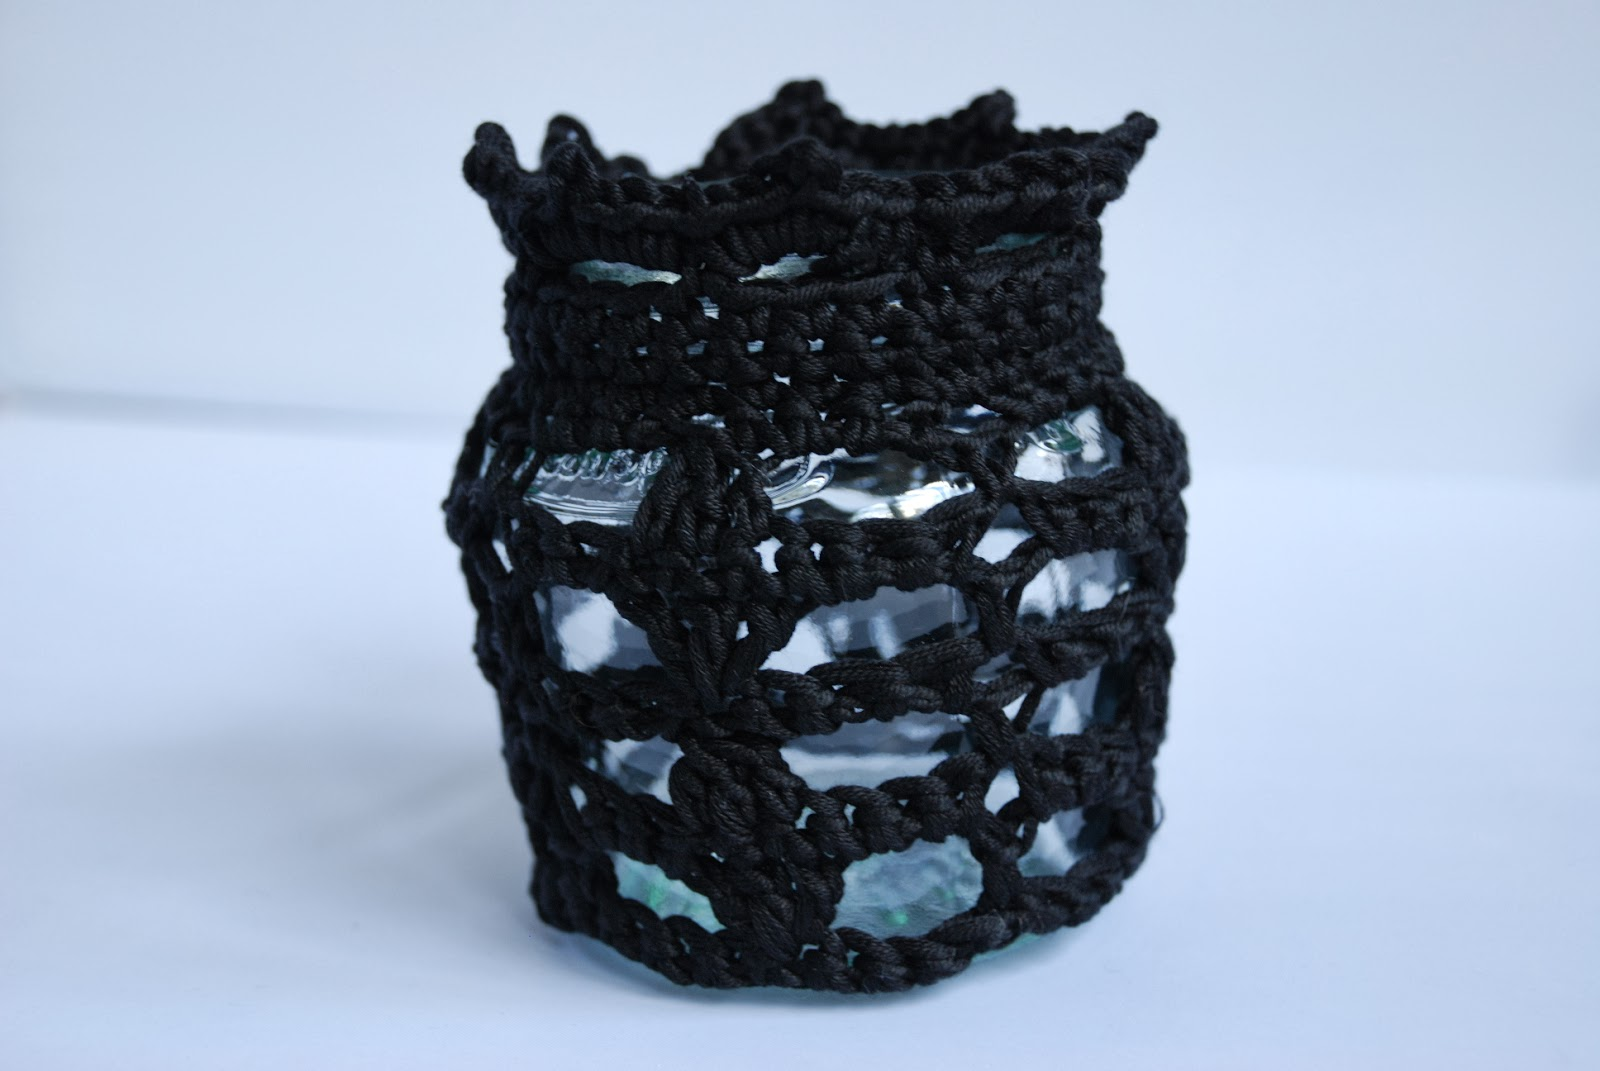 Crochet votive jar cosy pattern and tutorial: image of crochet jar cosy